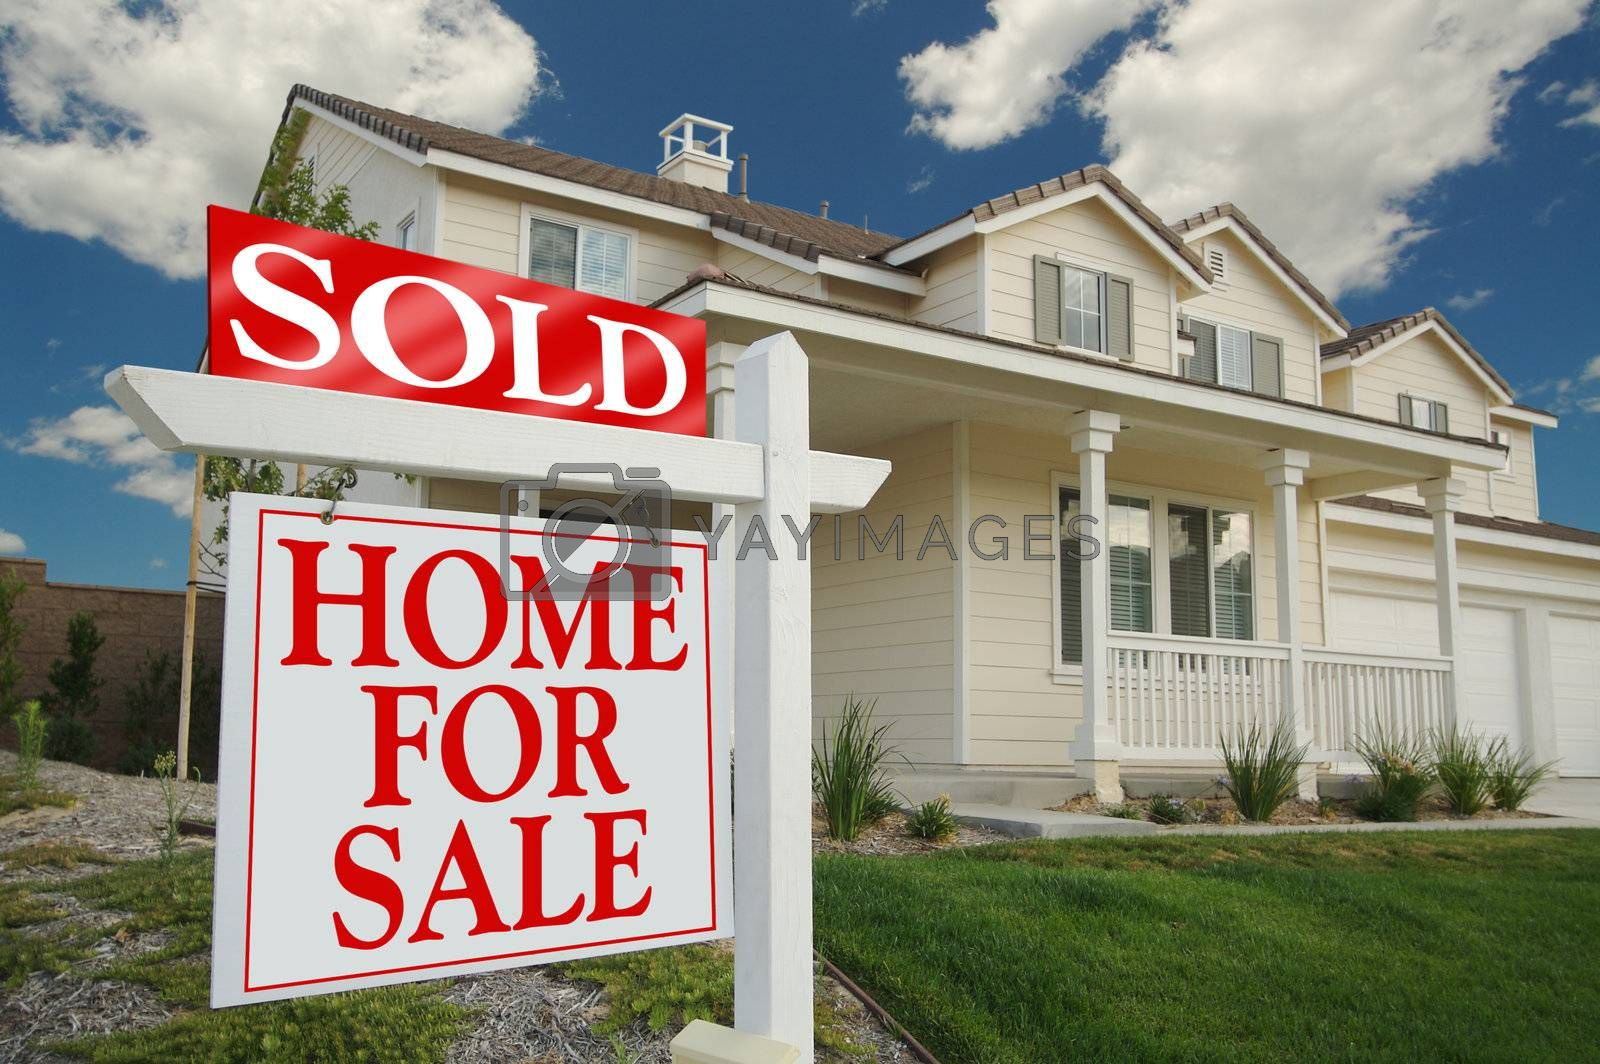 Sold Home For Sale Sign by Feverpitched